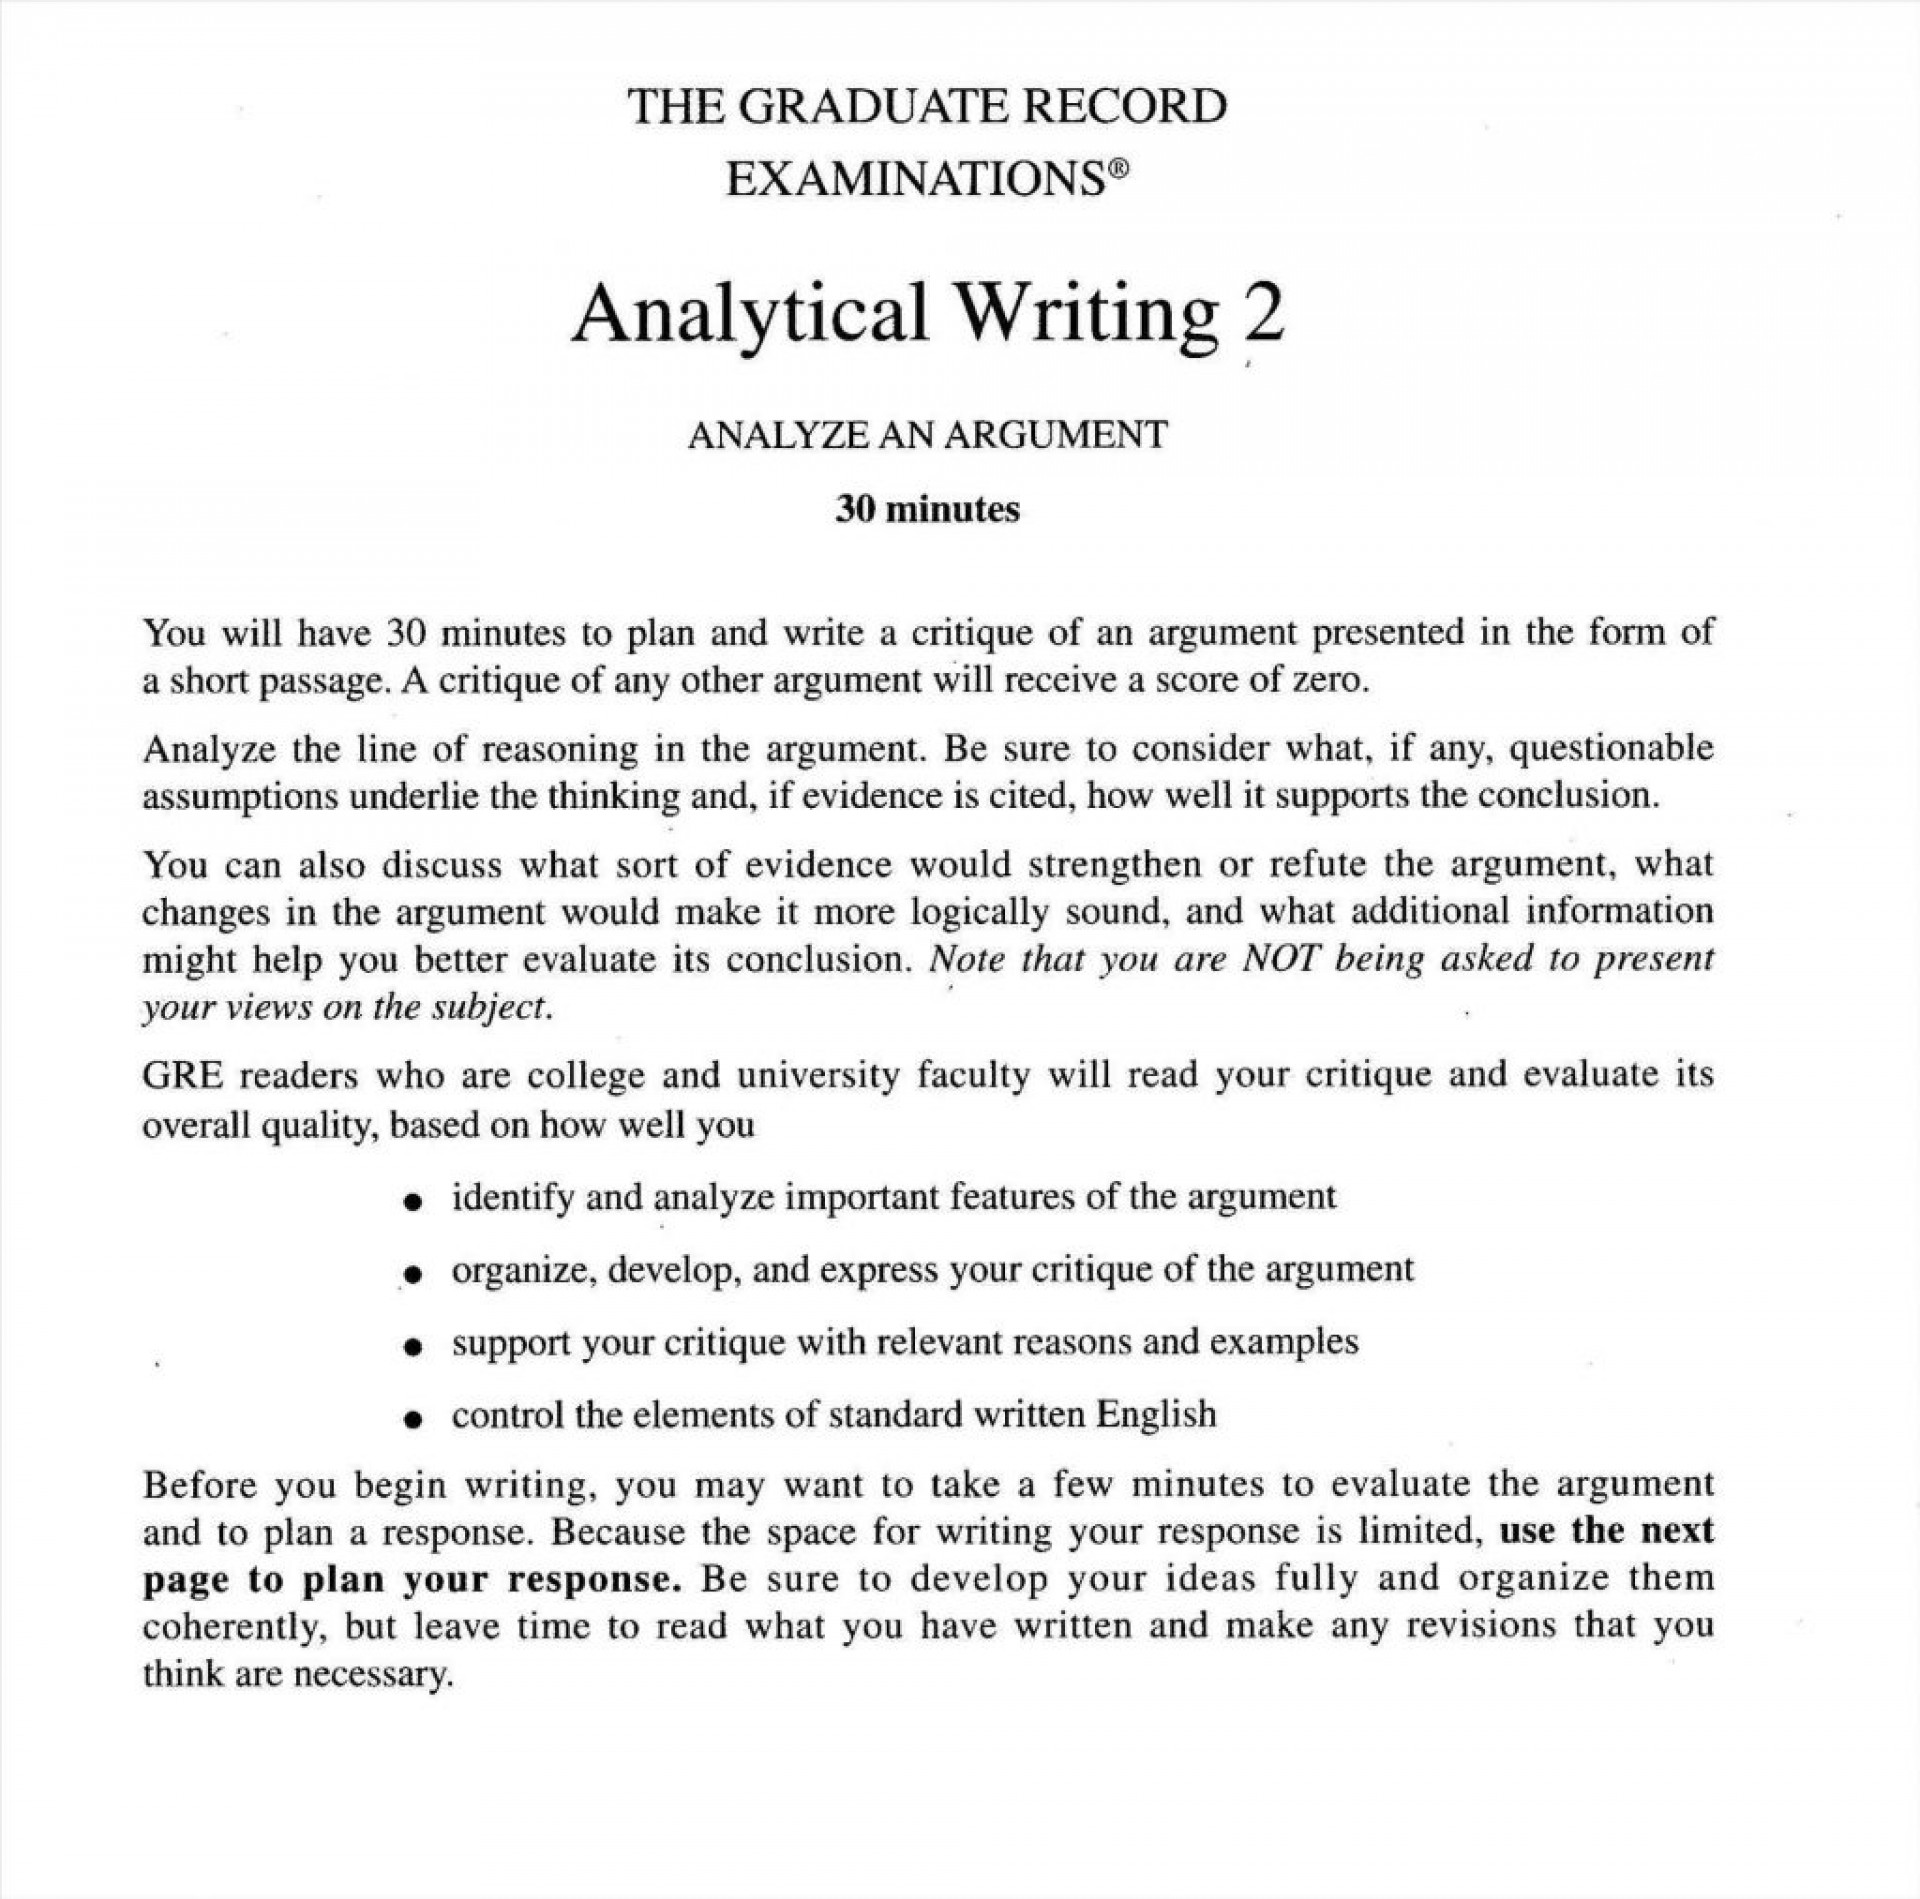 024 Gre Issue Essay Template Argument Examples Fresh English Friendship Thesis Sample With How To Write An High 1024x1013 Example Sensational Samples Ets Analytical Writing Solution 1920